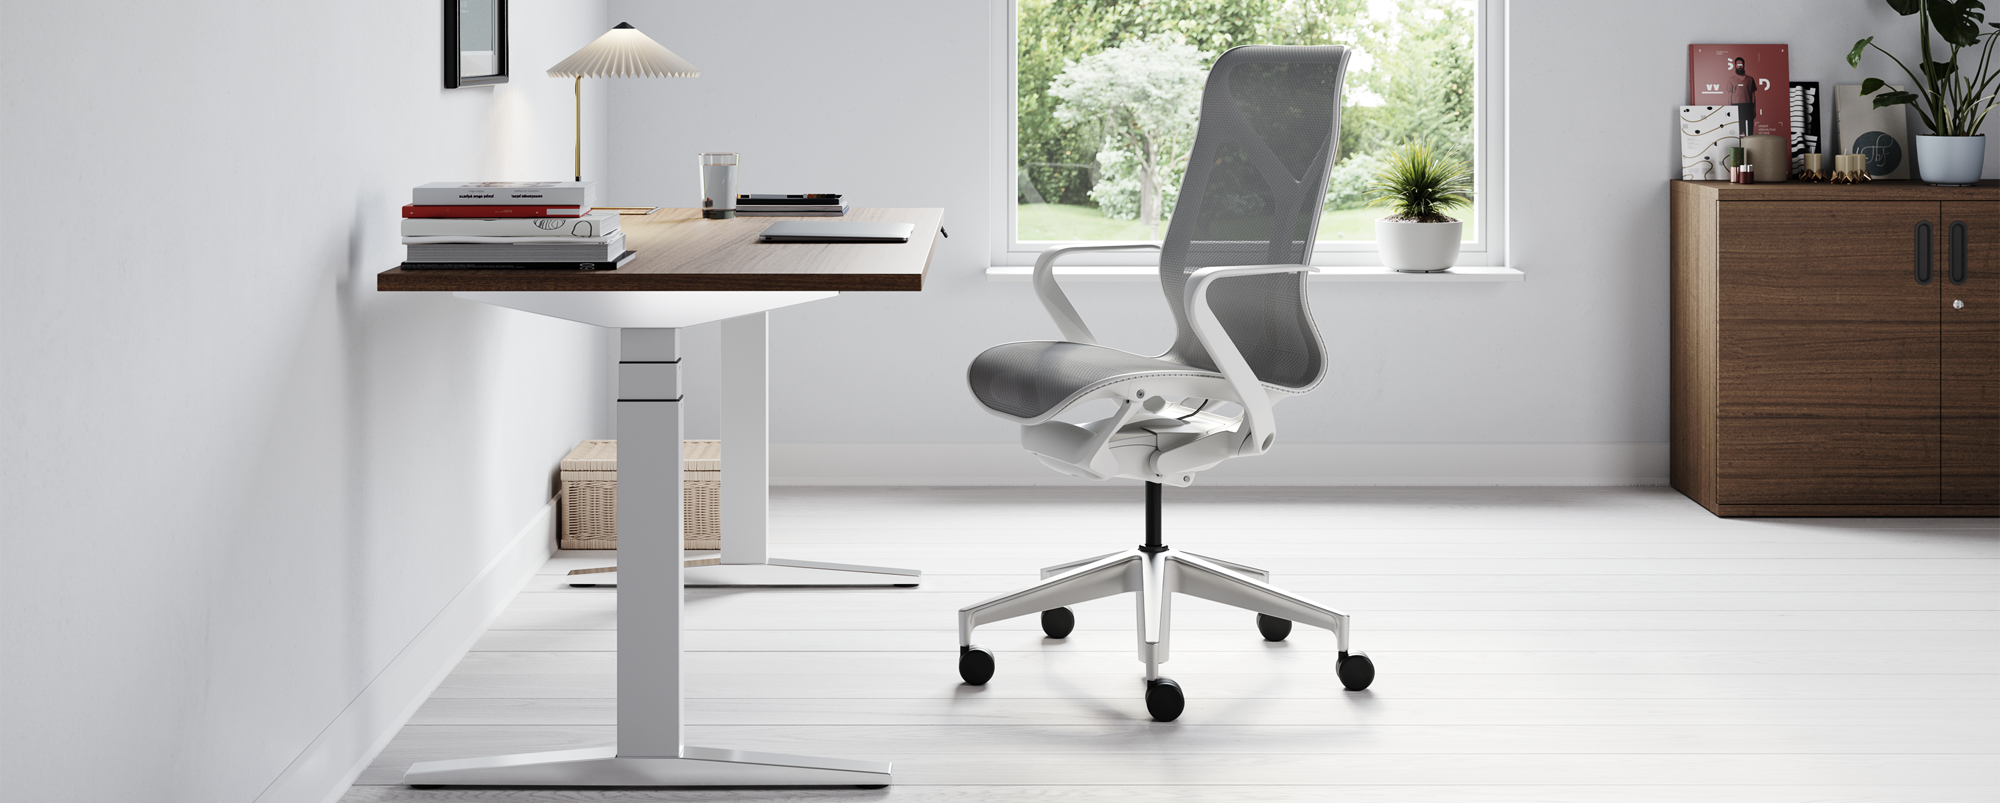 A grey Cosm chair at a Ratio desk